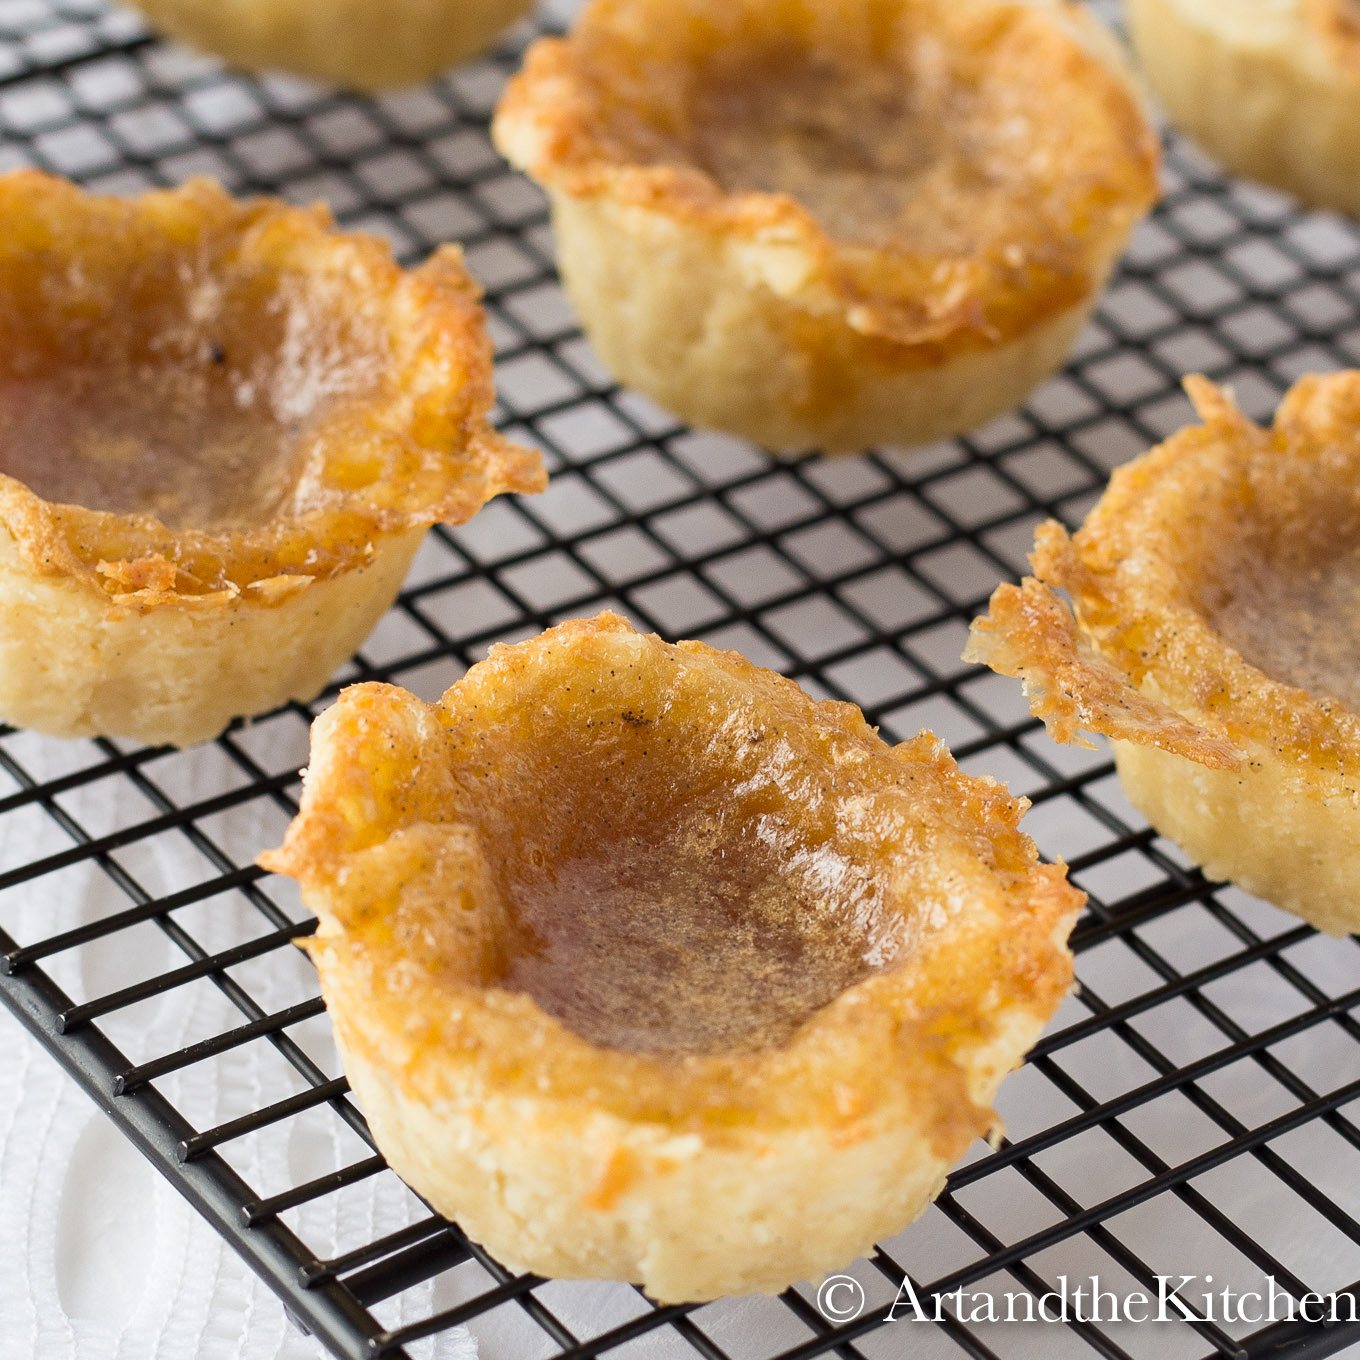 homemade butter tarts on black wire cooling rack.